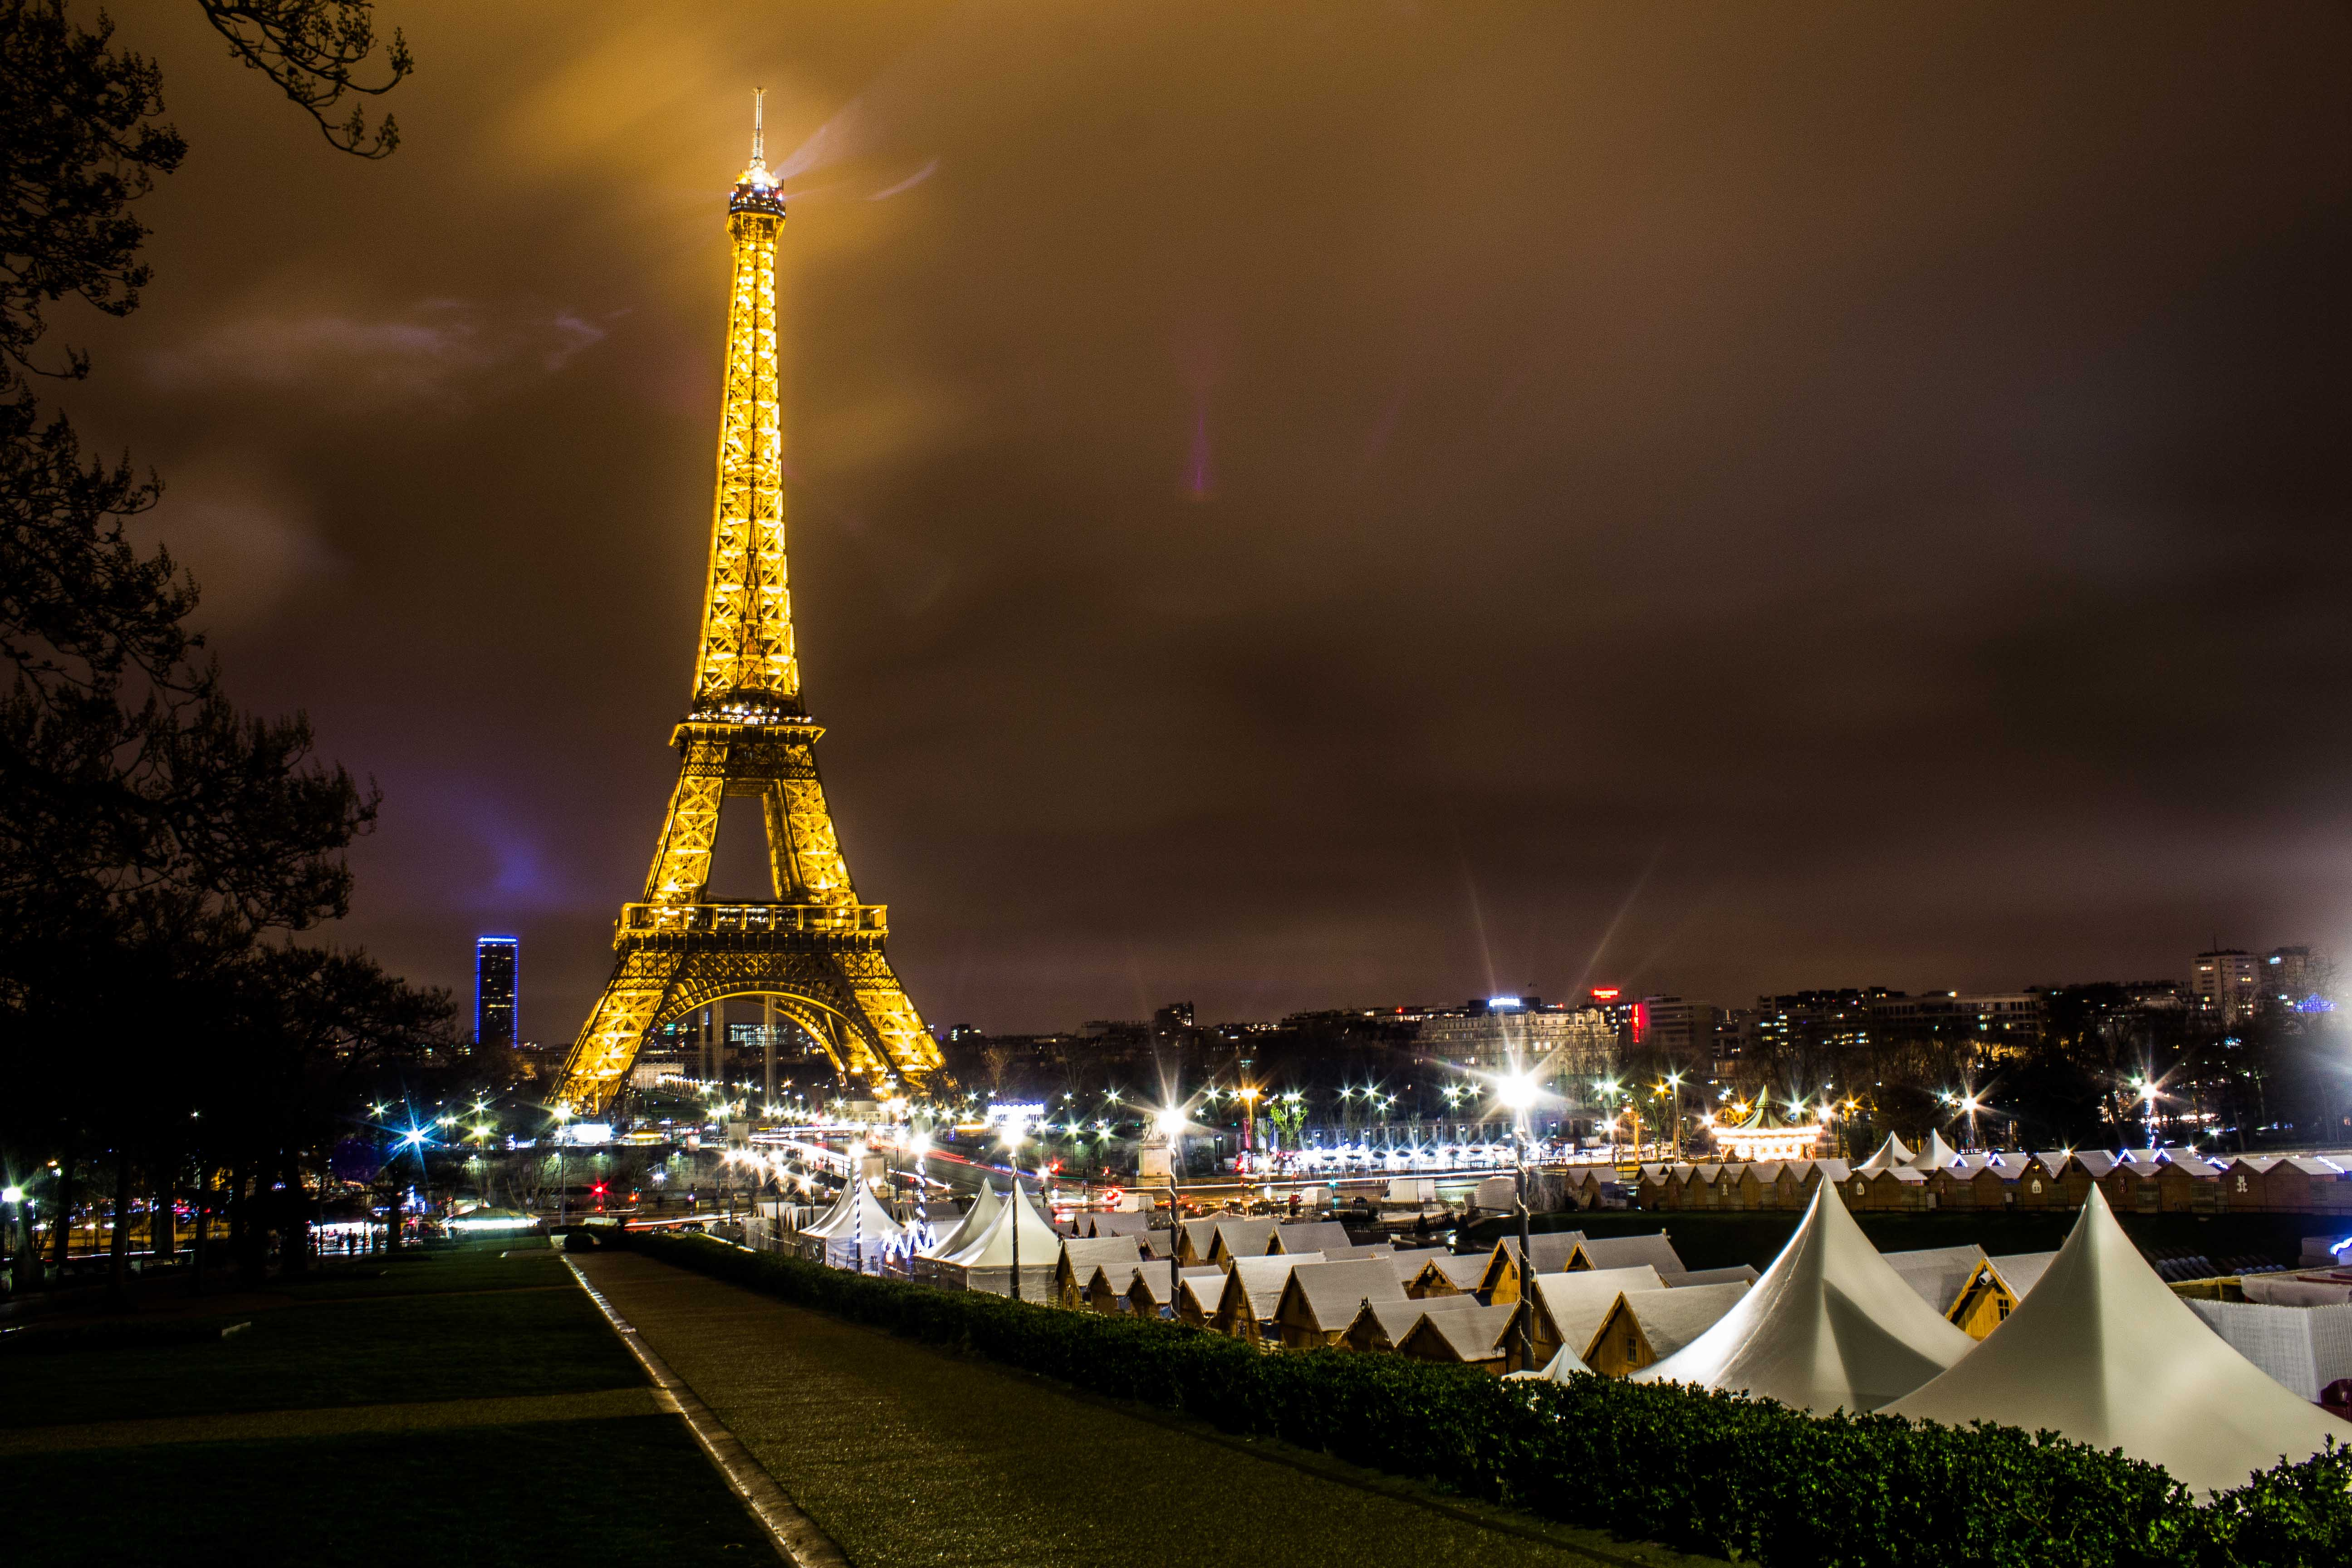 Car Lights Night Wallpaper A Weekend Away To Paris At Christmas Easy Booking Group